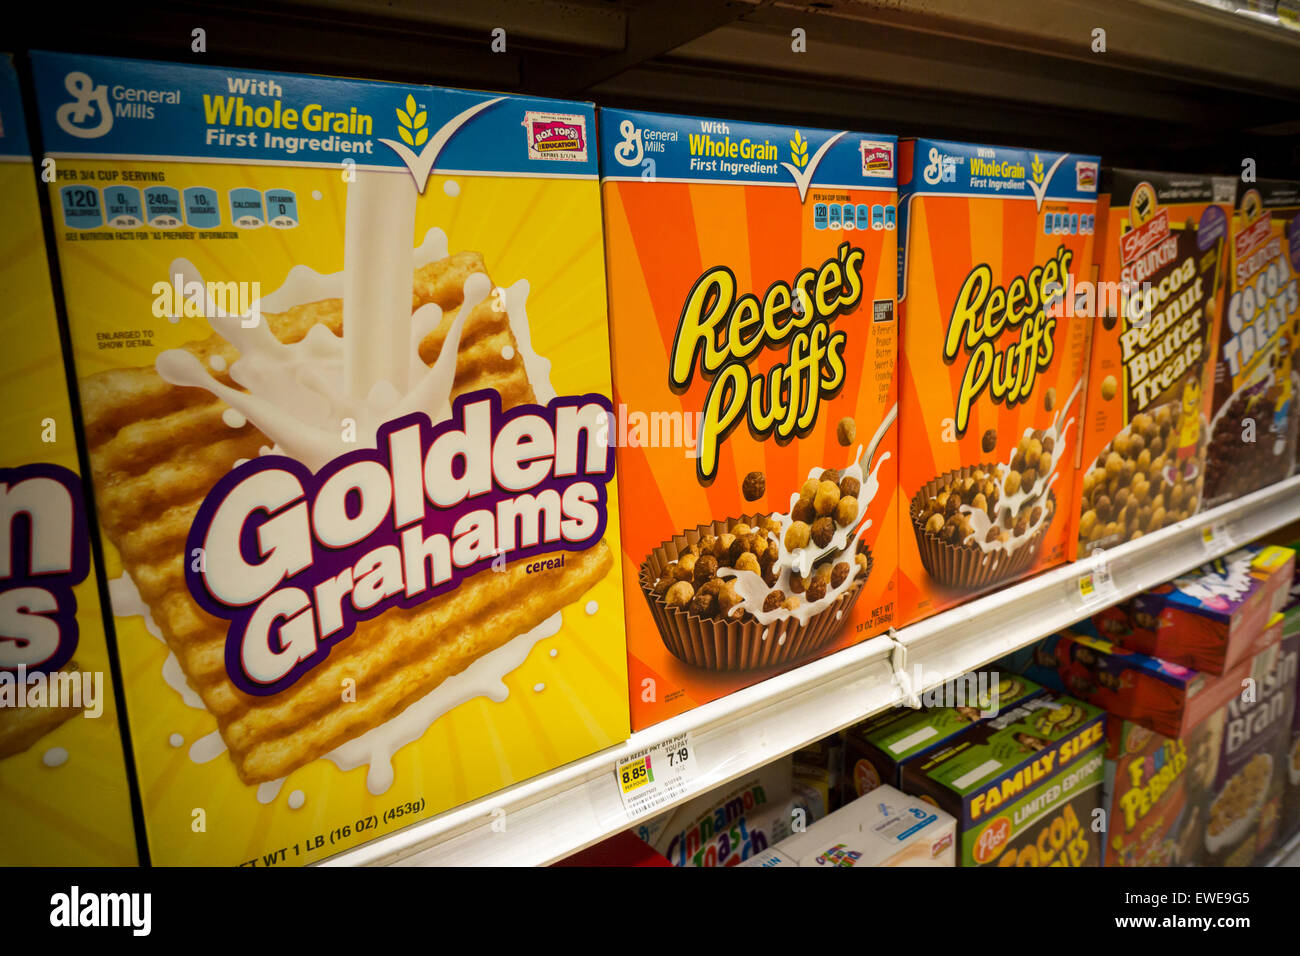 Boxes of General Mills breakfast cereals including Golden Grahams and Reese' Puffs displayed on supermarket - Stock Image